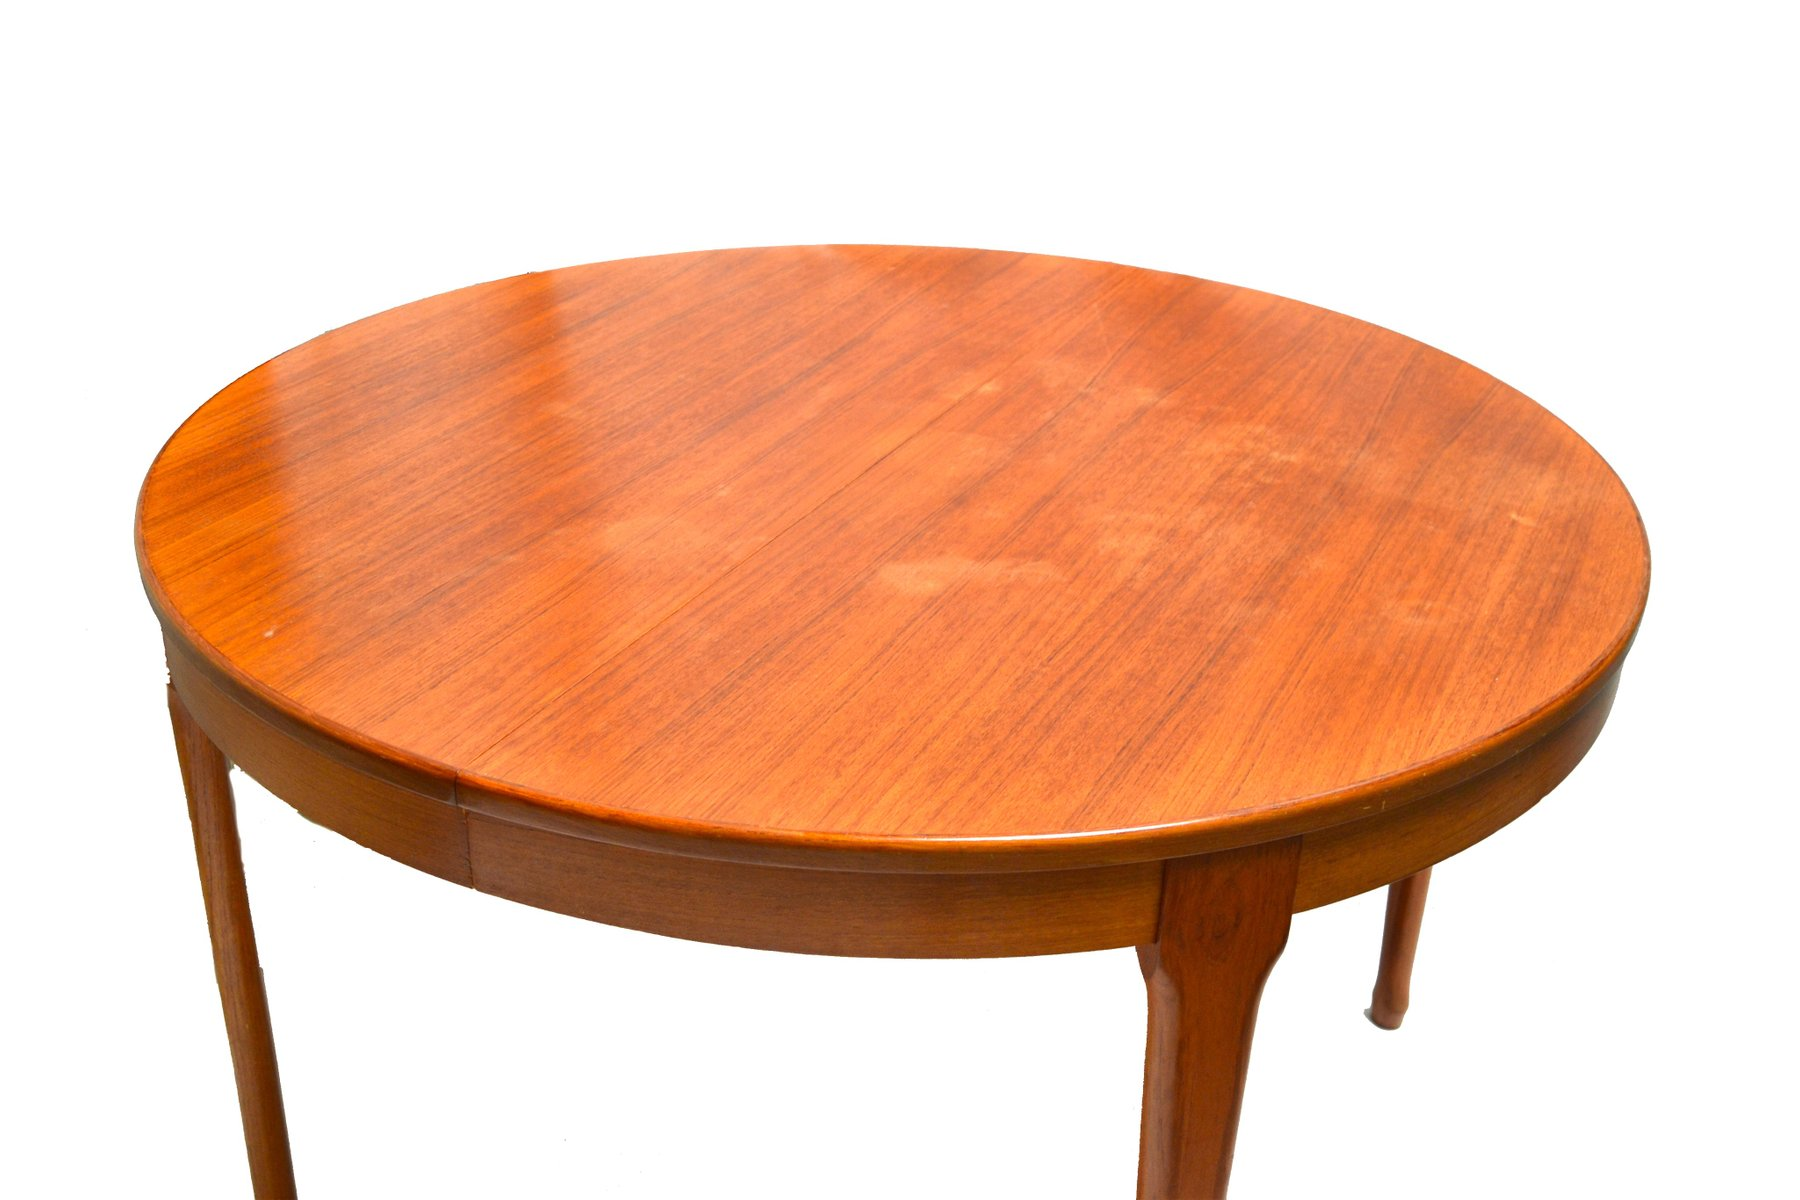 Vintage extendable round dining table from meubles tv for for Ameublement retro